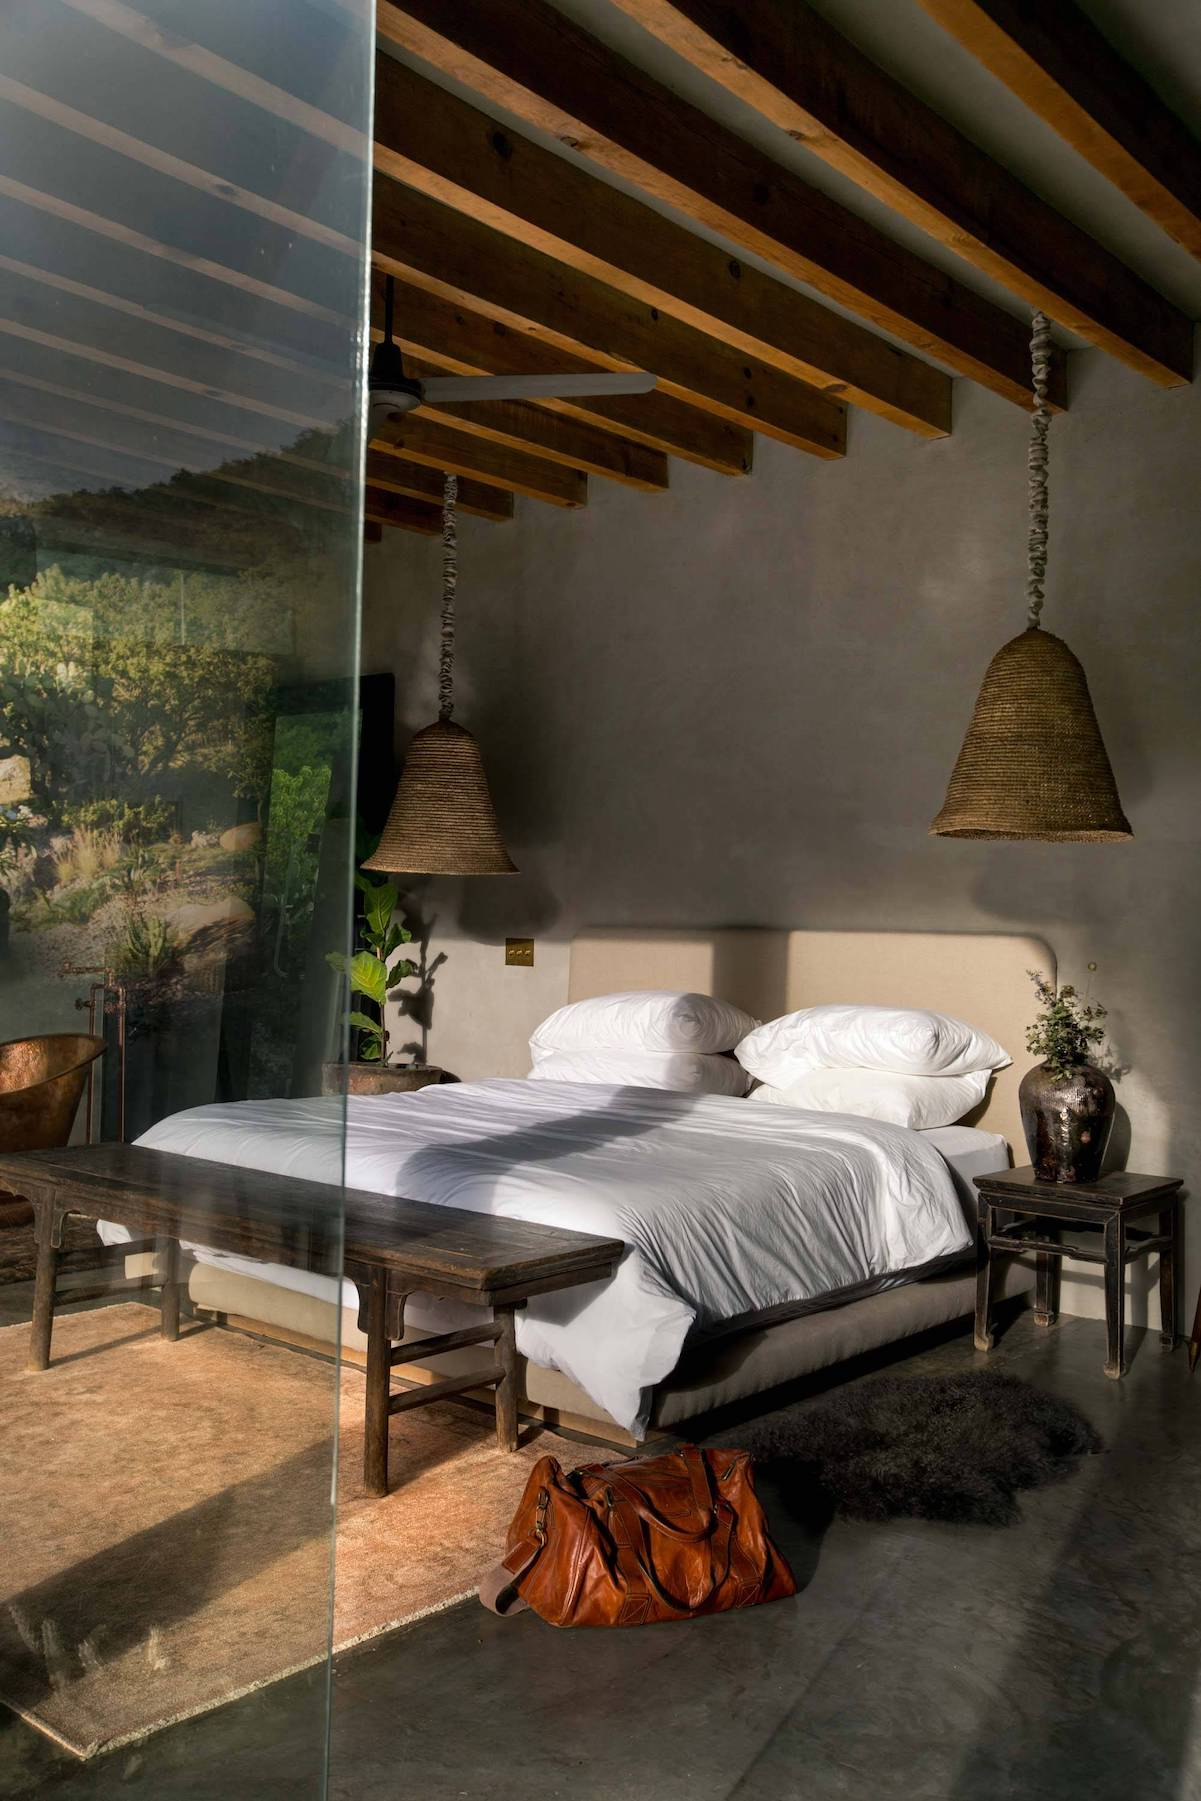 The retreat can be used as a chance to immerse yourself in nature.